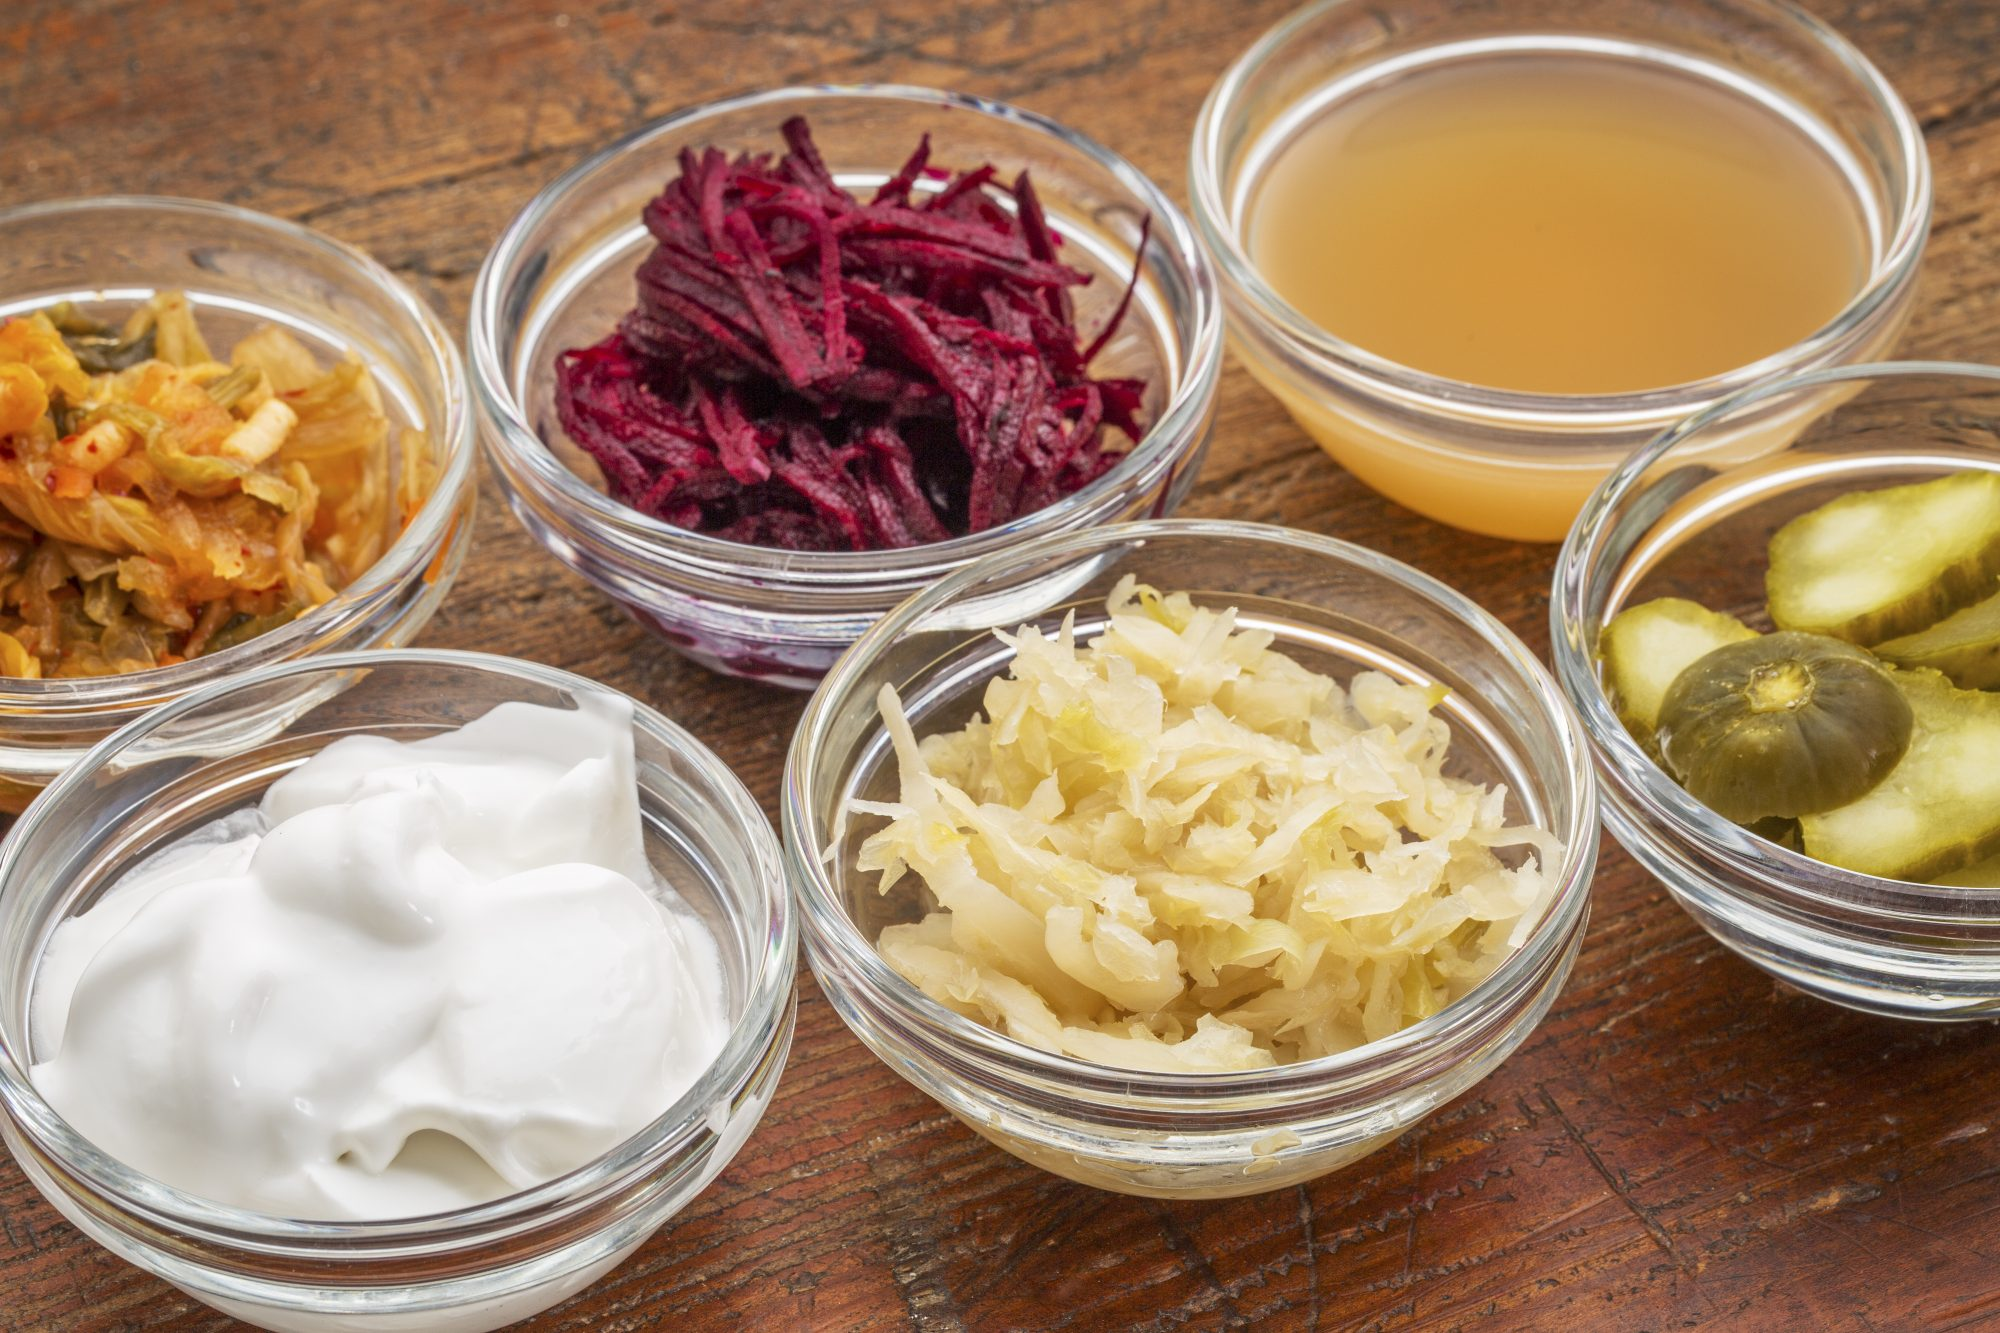 What Are Probiotics? 5 Things You Need to Know